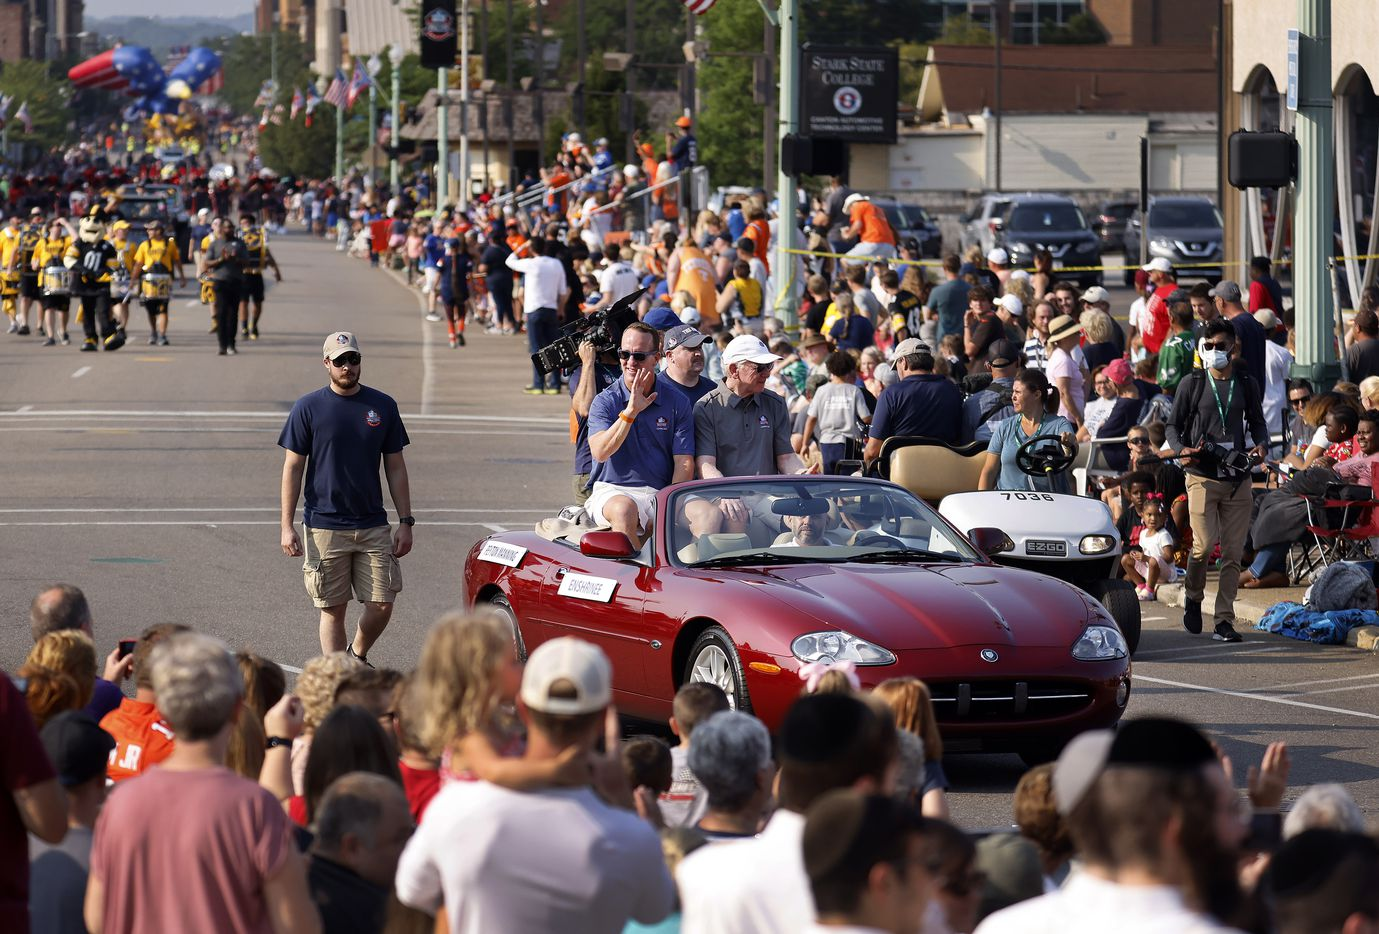 Indianapolis Colts quarterback and Pro Football Hall of Fame inductee Peyton Manning (in car, left) and his father Archie Manning wave to fans during the Canton Repository Grand Parade in downtown Canton, Ohio, Saturday, August 7, 2021. The parade honored newly elected and former members of the Hall. (Tom Fox/The Dallas Morning News)